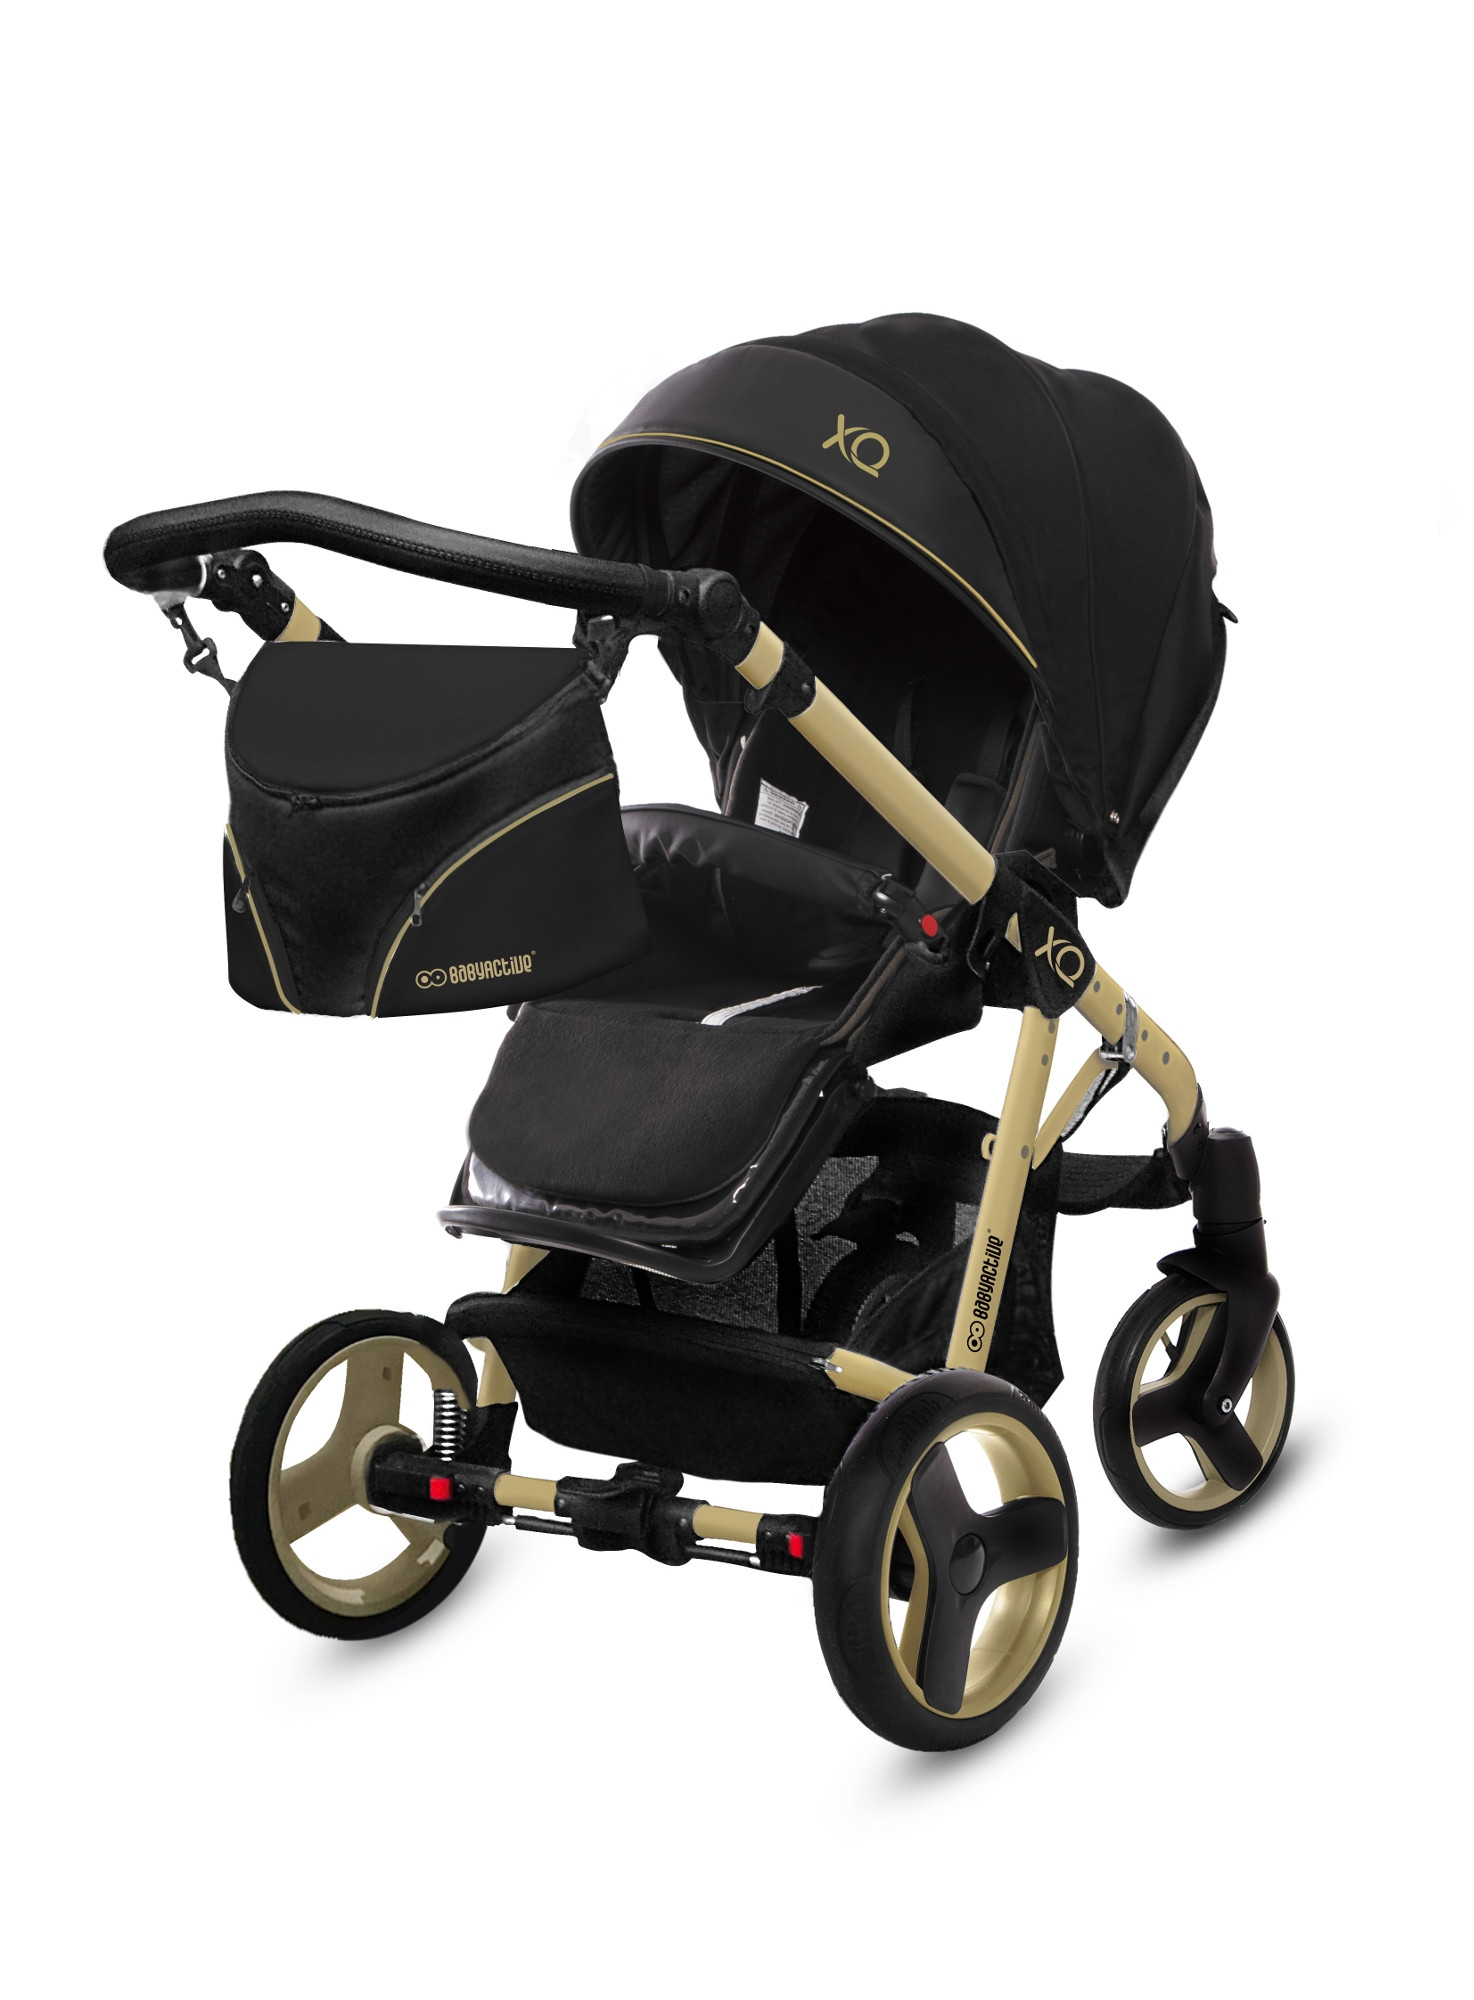 komfort buggy sportwagen xq kombinierbar mit babyschale. Black Bedroom Furniture Sets. Home Design Ideas